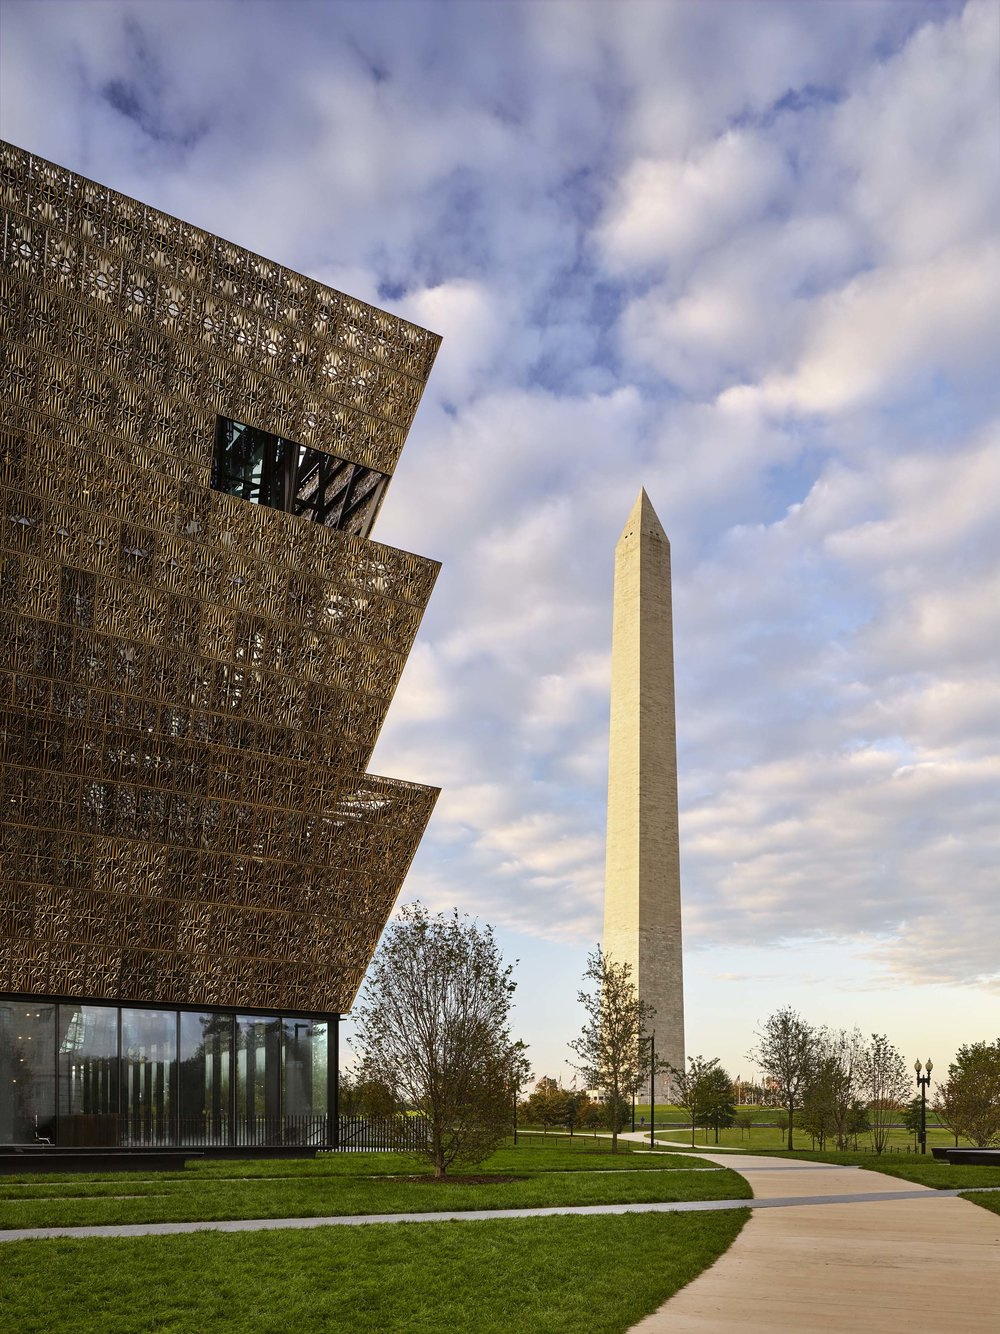 Students and their guardians will tour the National Museum of African American History & Culture and will have time to visit other sites, like Washington Monument